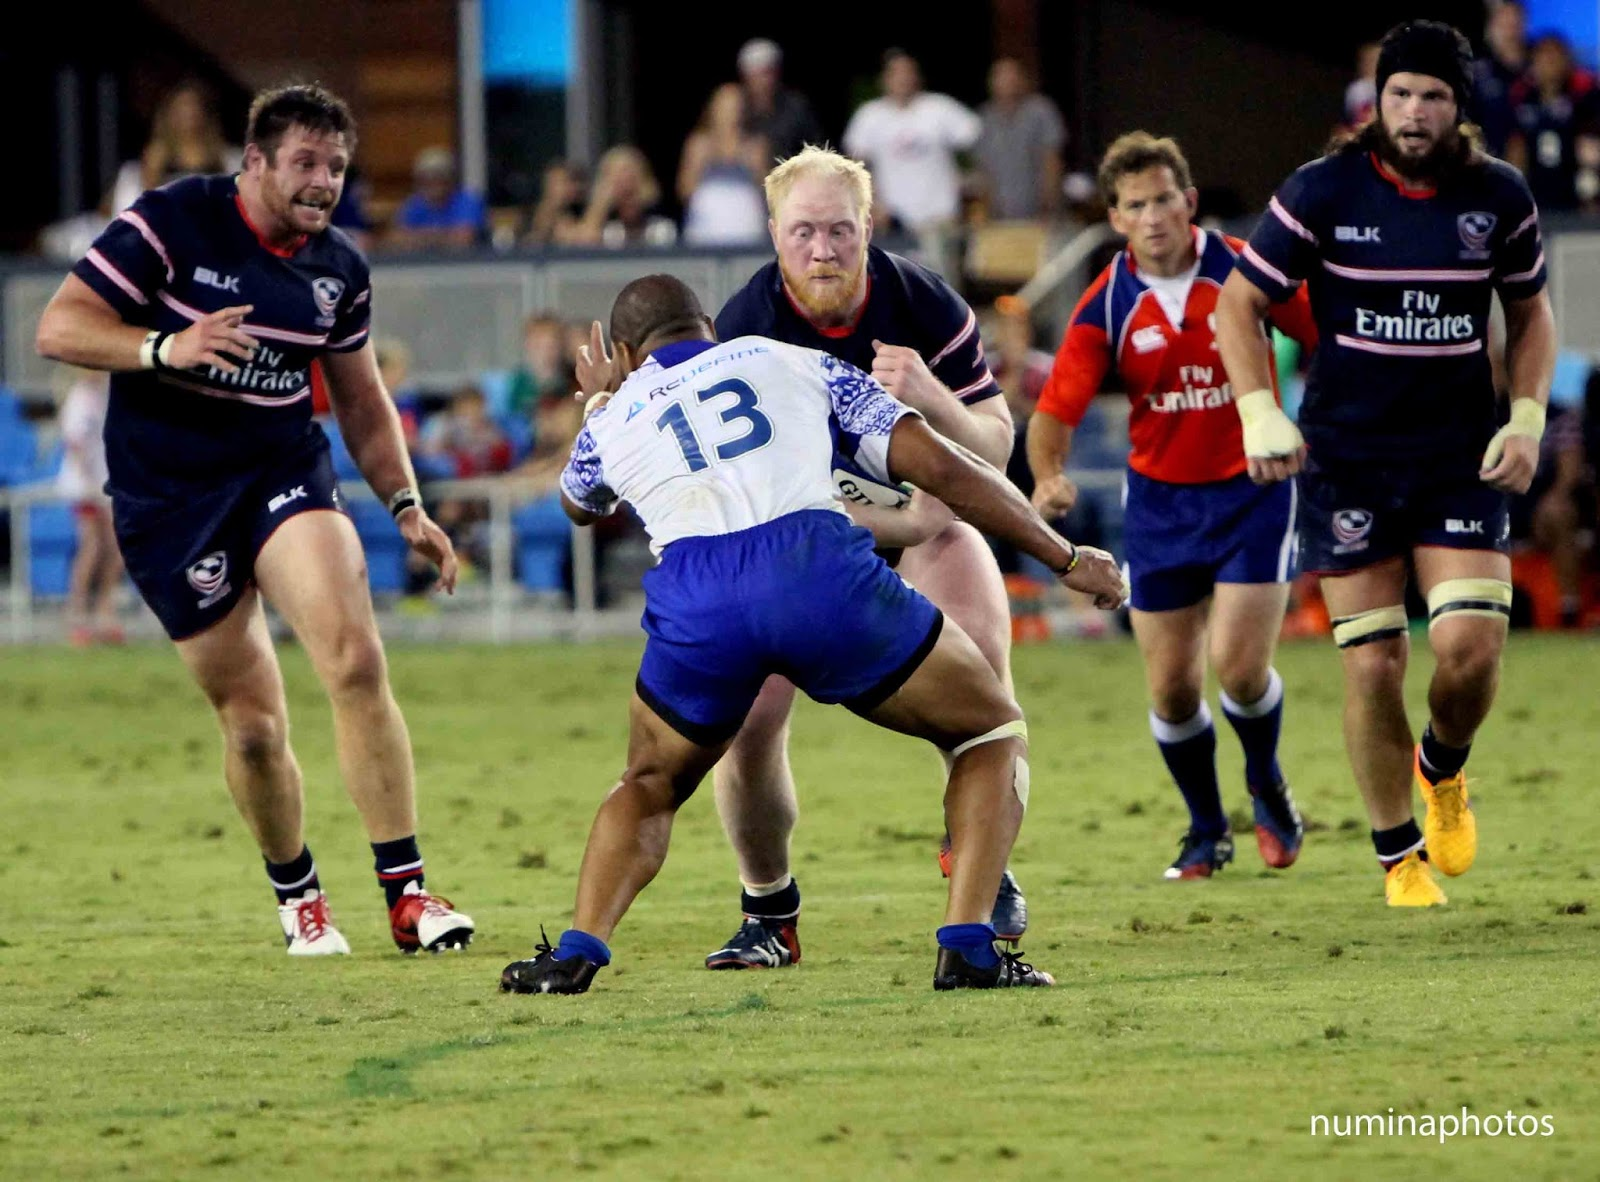 Samoa Rugby Quotes: This Is American Rugby: Eagles-Samoa Post Match Quotes